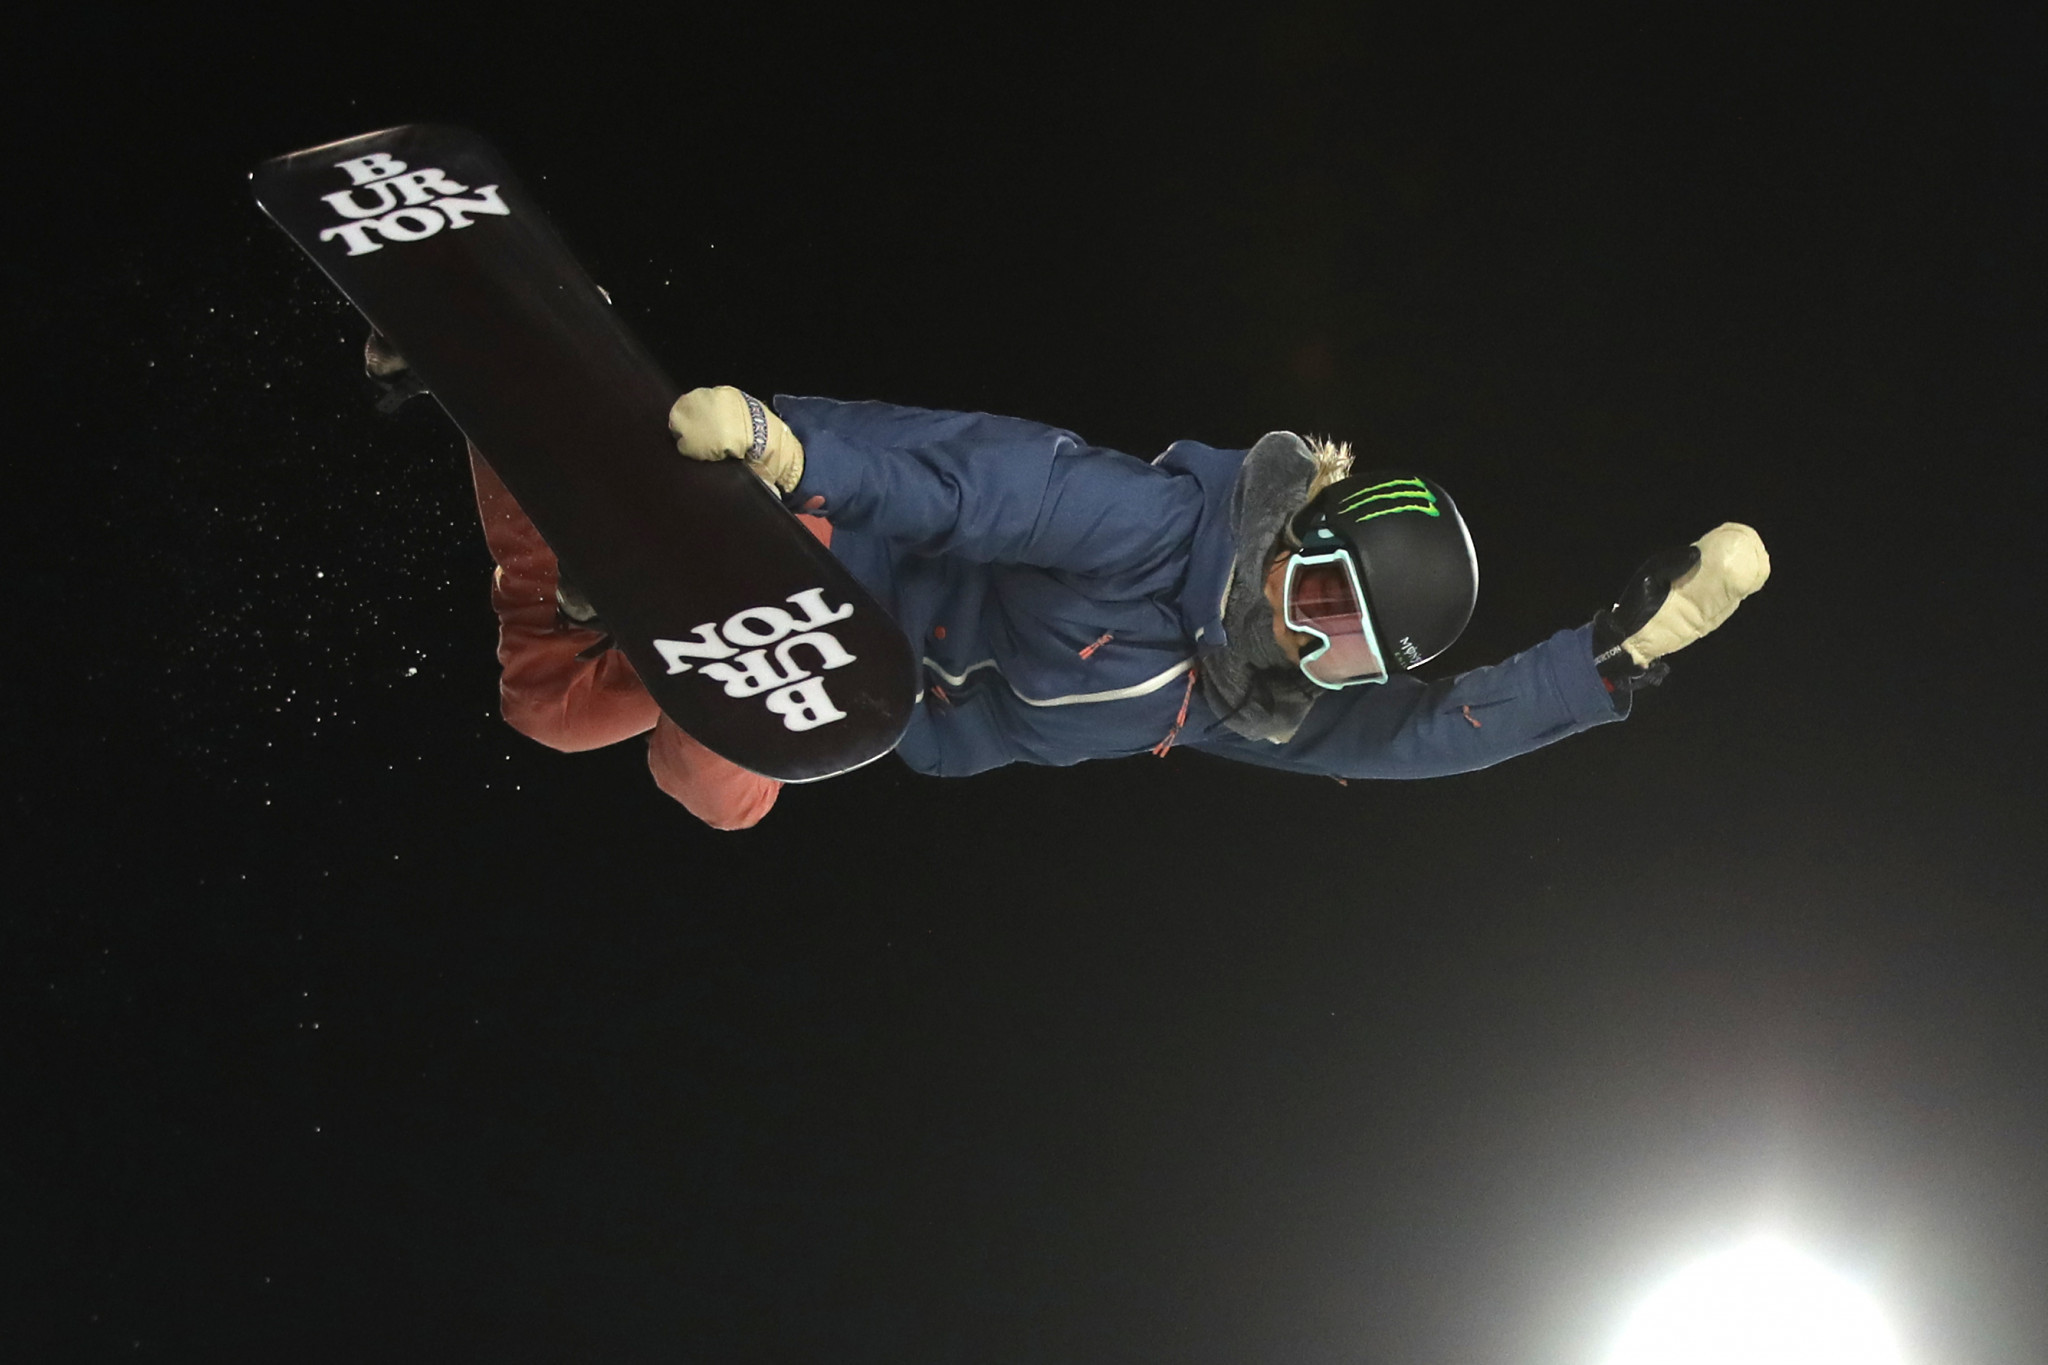 Kim wins fifth X Games superpipe title as Gu adds another gold